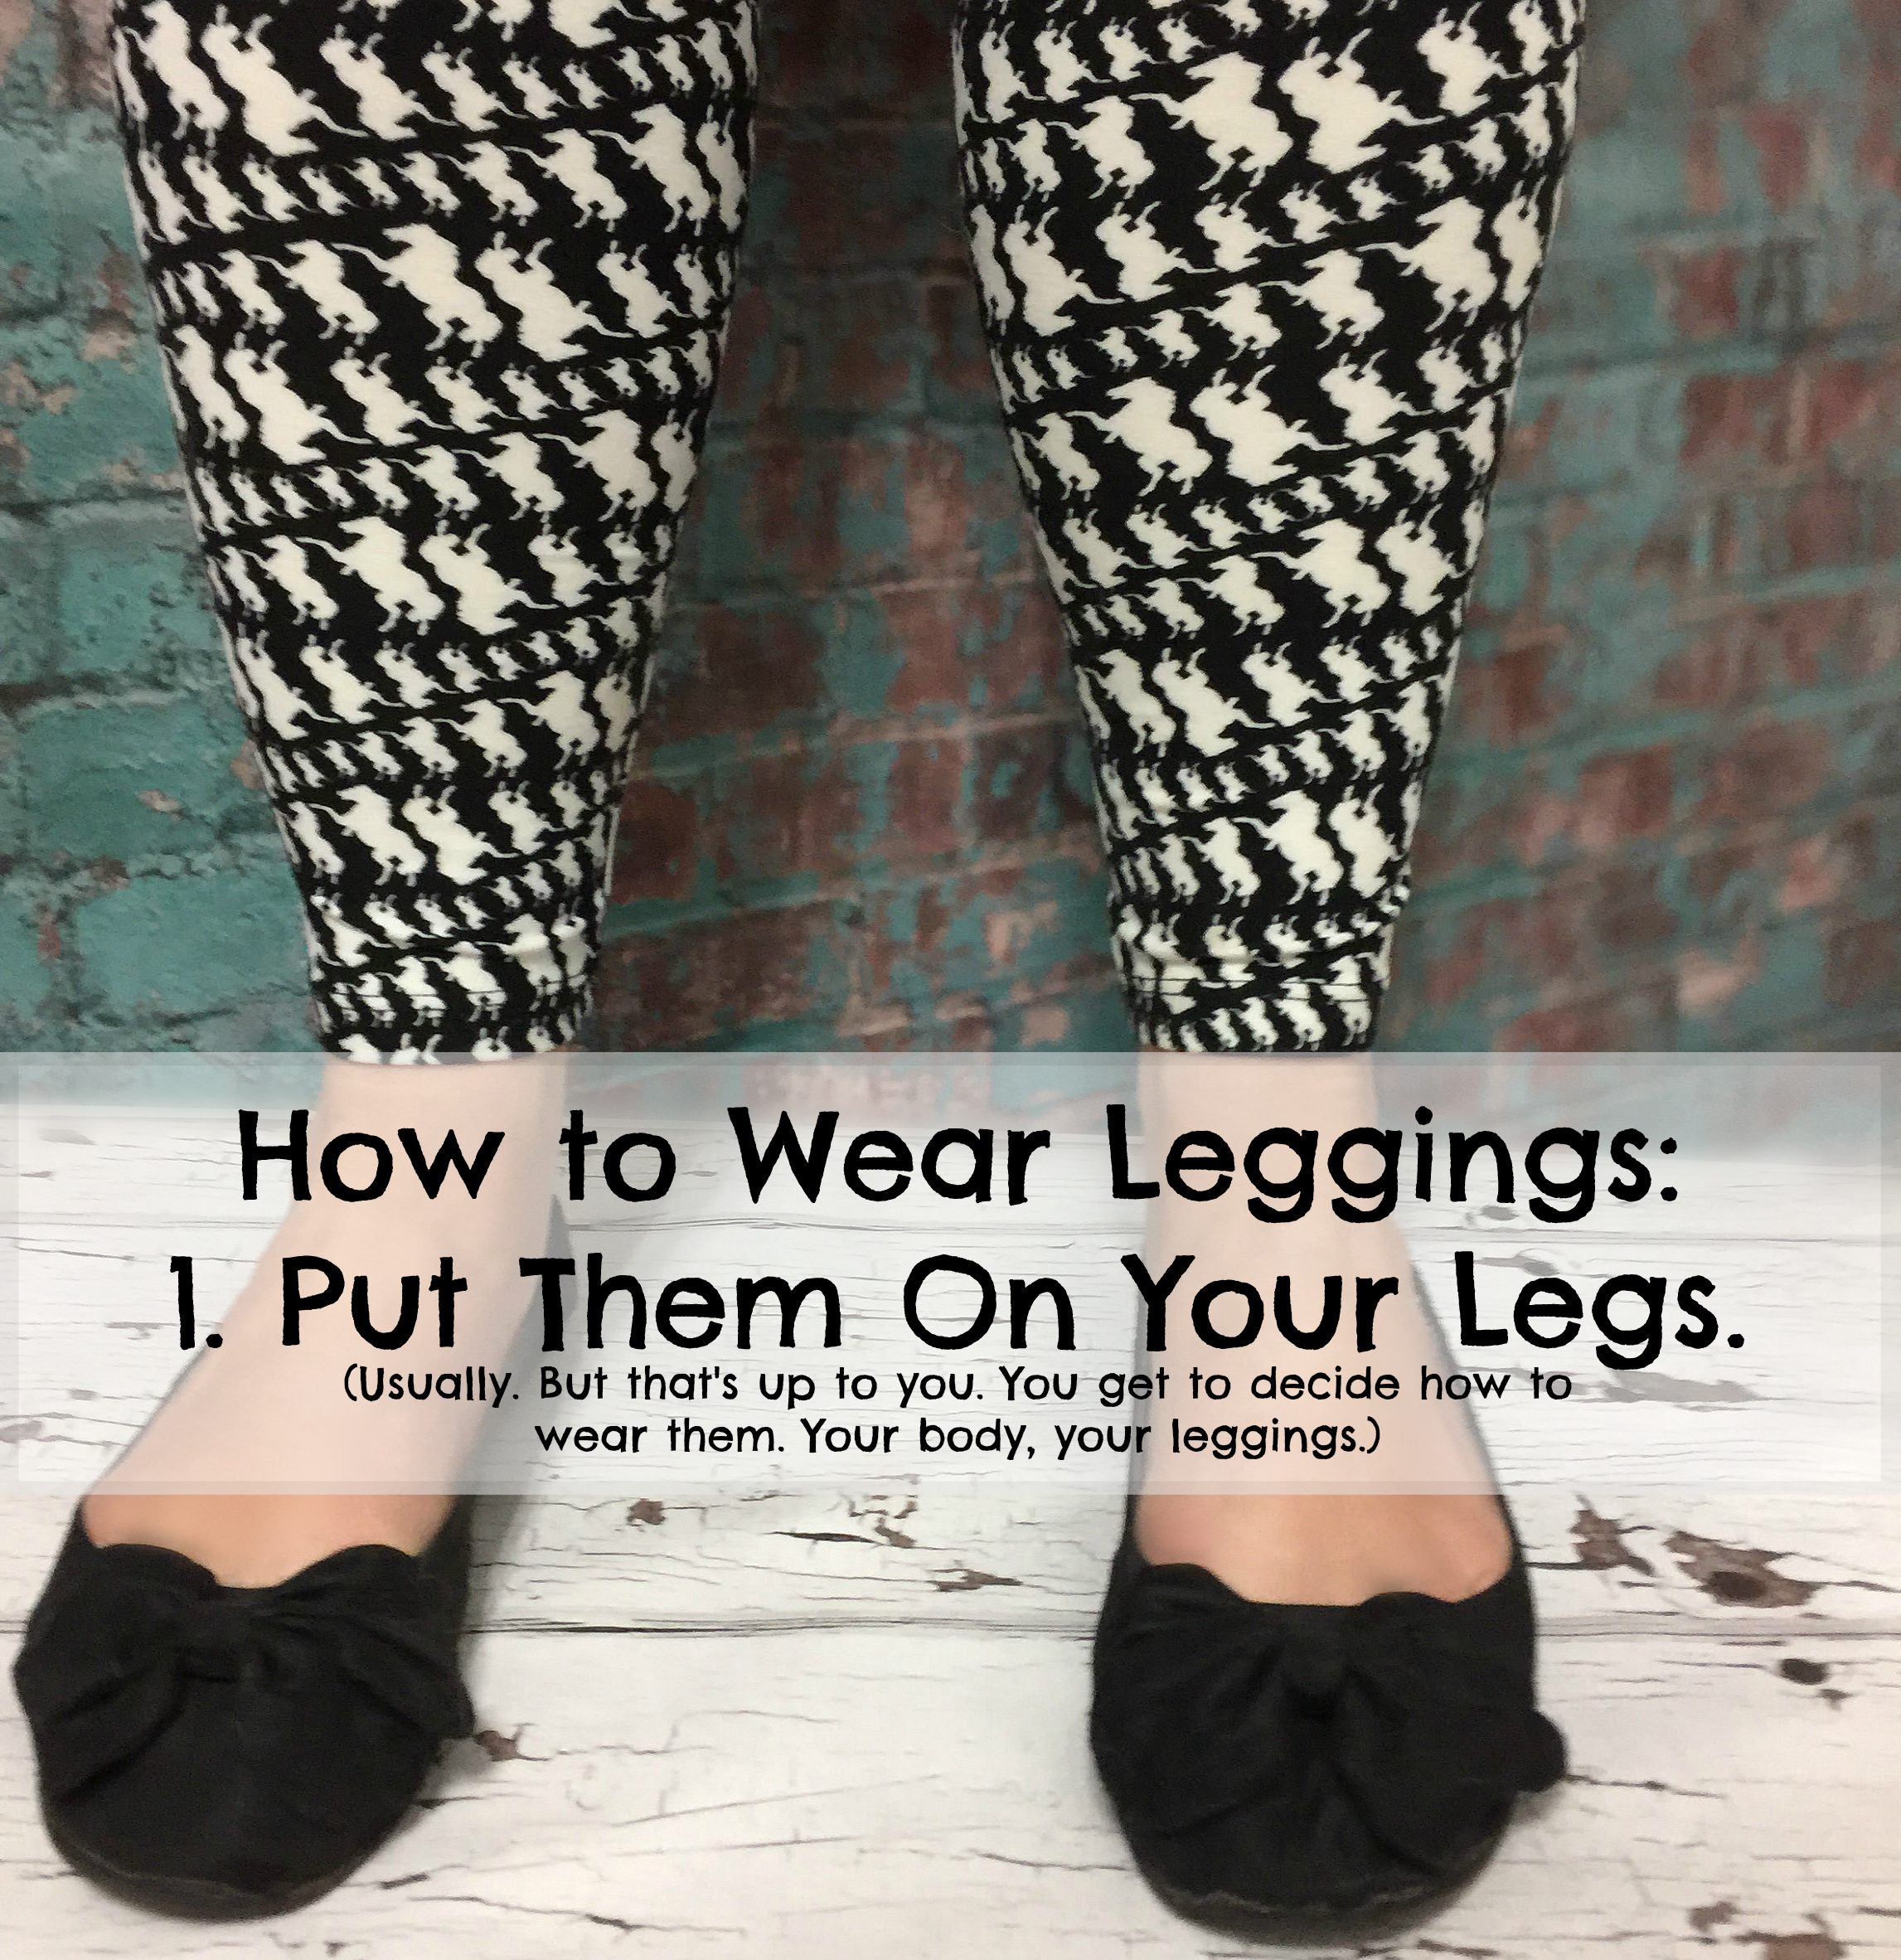 How To Wear Leggings | In Johnna's Kitchen